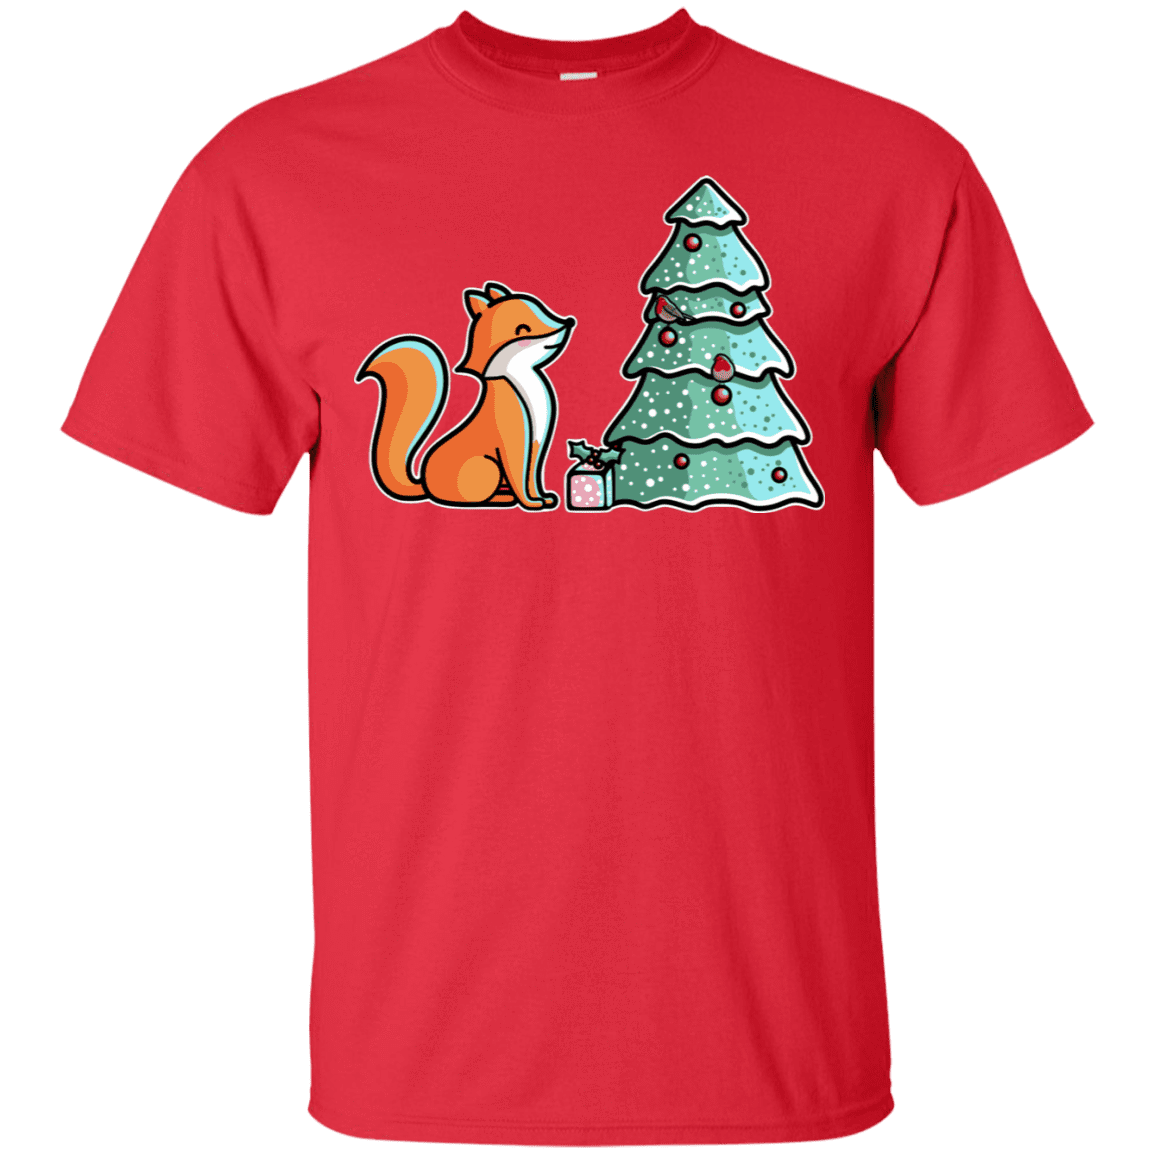 T-Shirts Red / S Kawaii Cute Christmas Fox T-Shirt